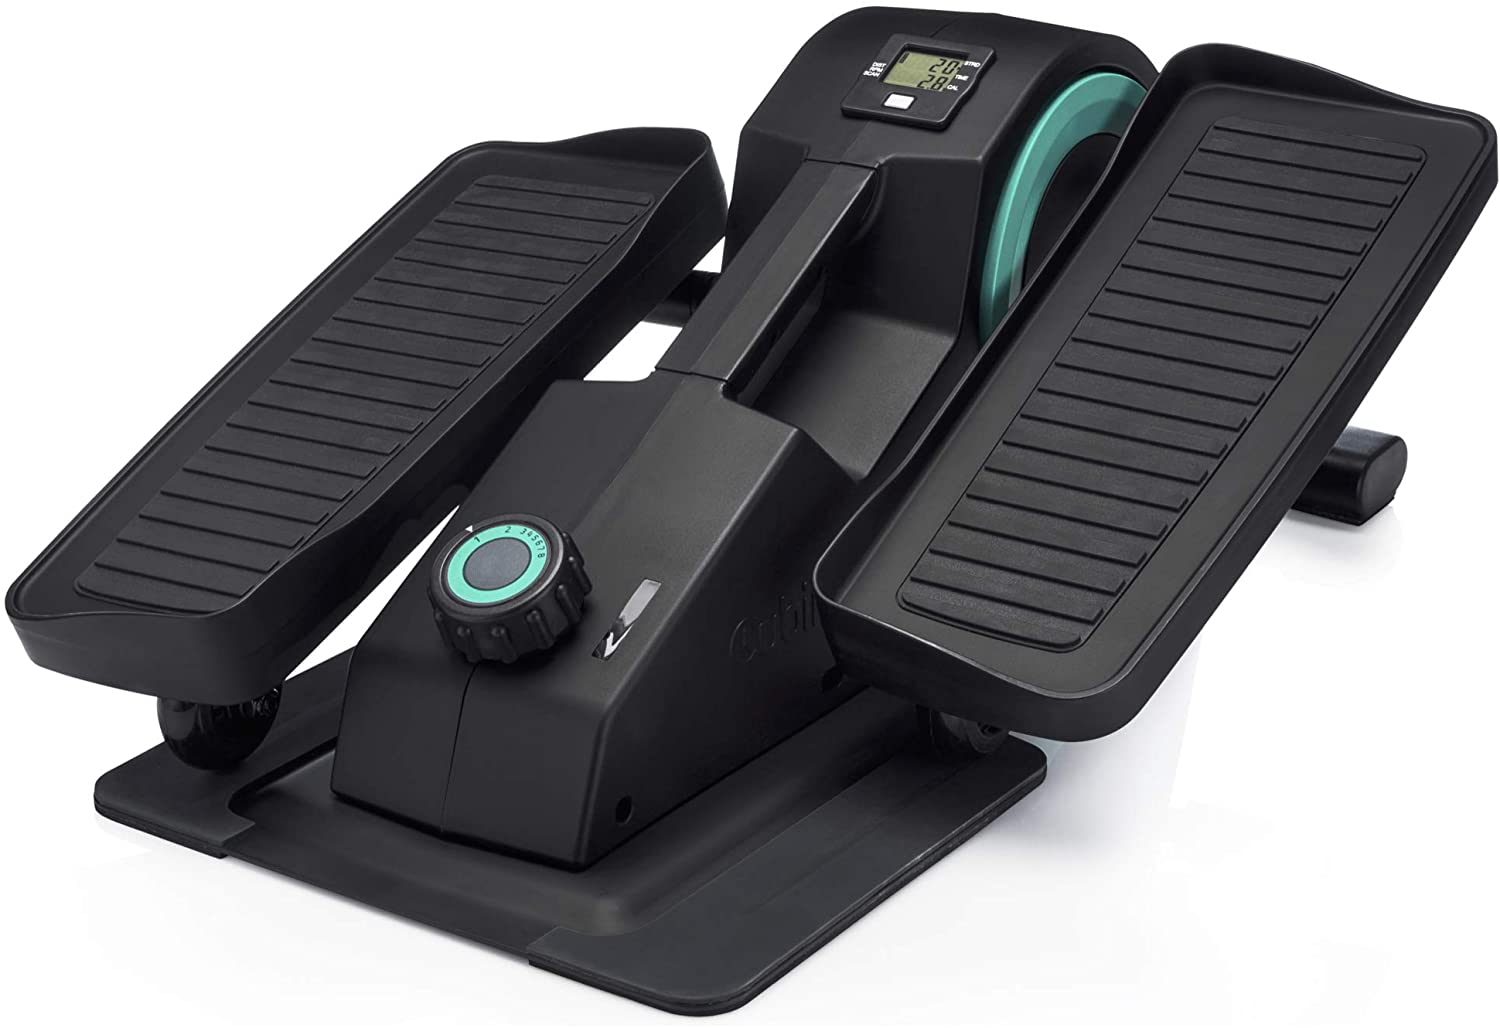 Cubii the Underdesk Treadmill